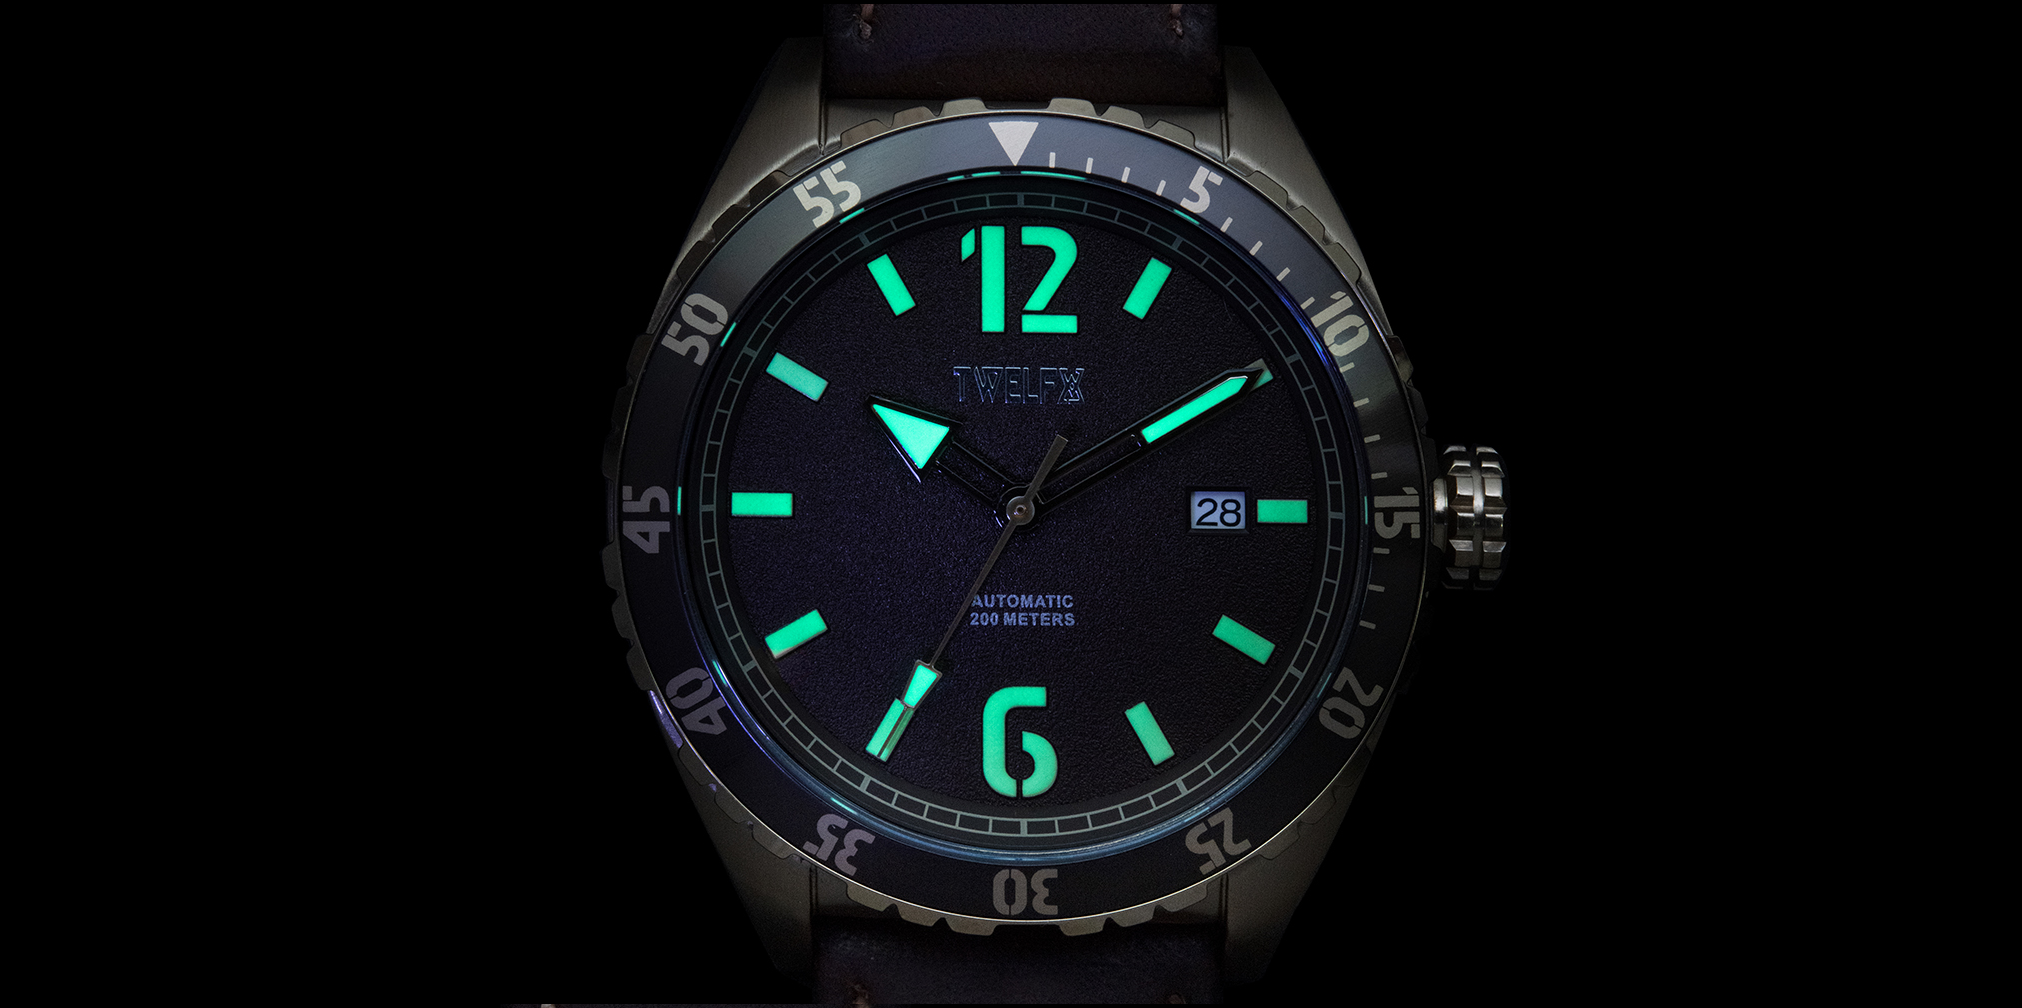 Twelfx Watch Lume Shot with Dark Background